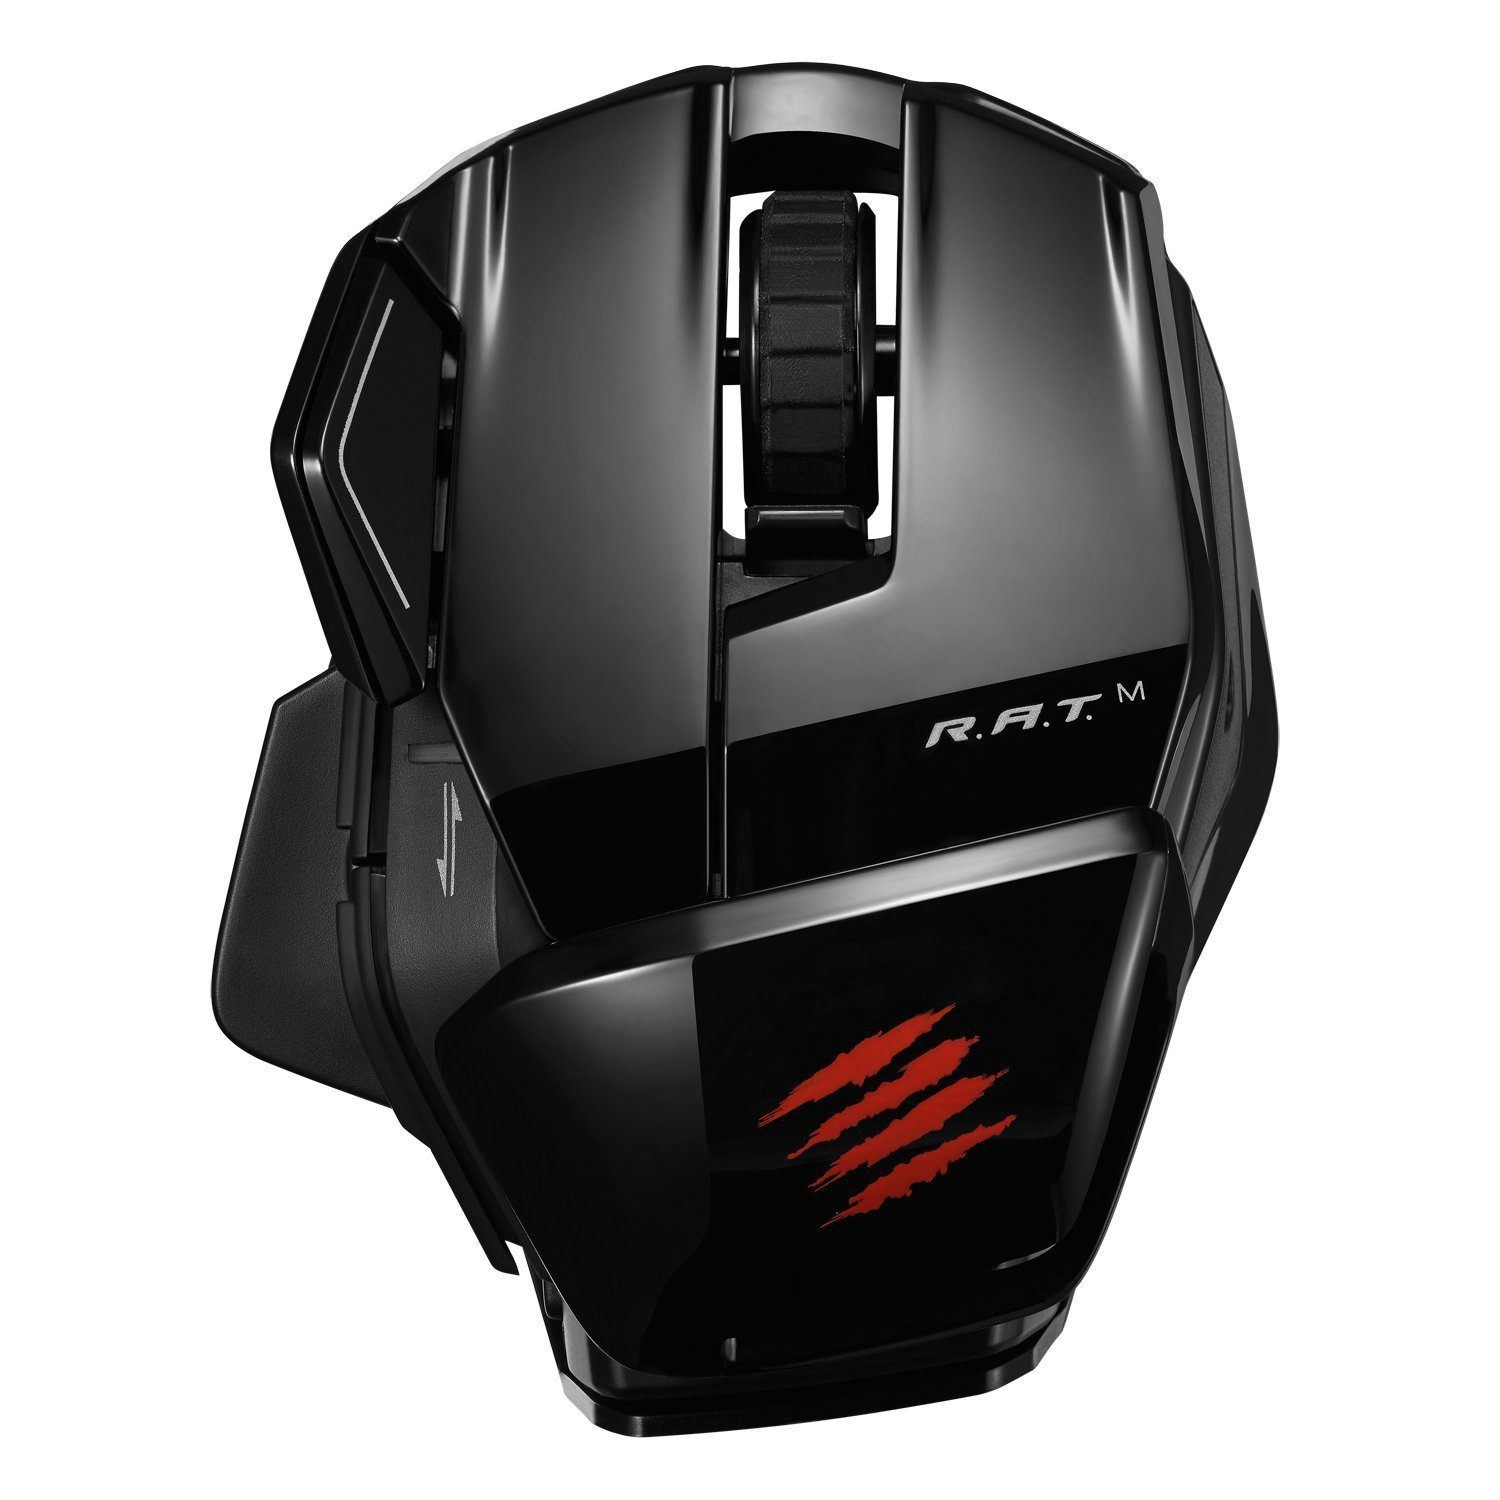 Mad Catz Mouse Office R.A.T.M glänzend schwarz »(PC Tablet/Smartphone)«